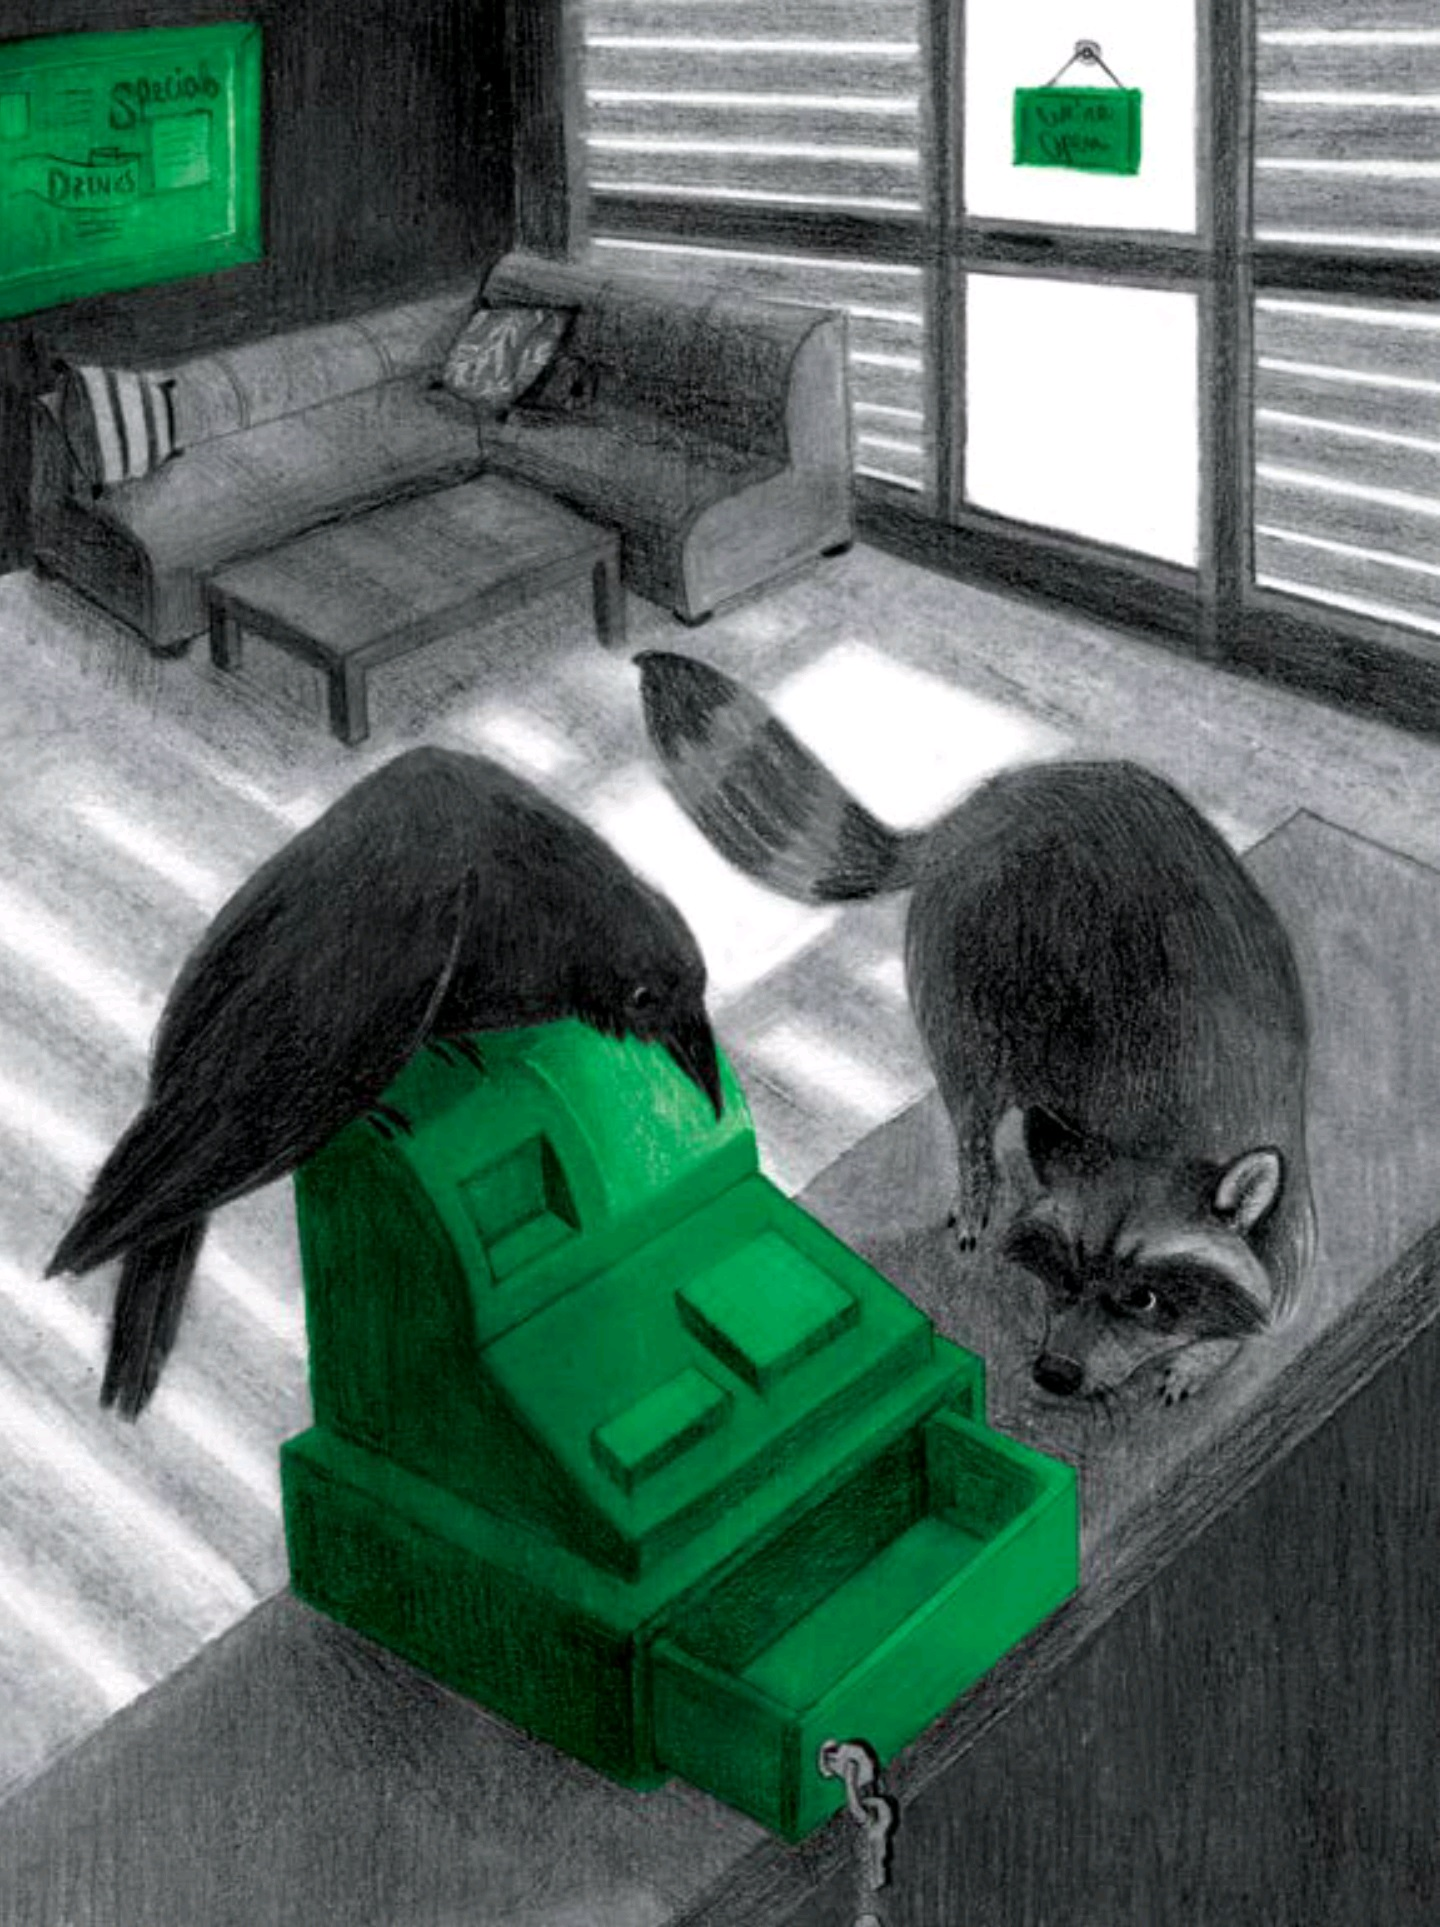 A raven and a raccoon are peering into an open cash drawer on the counter of a business.